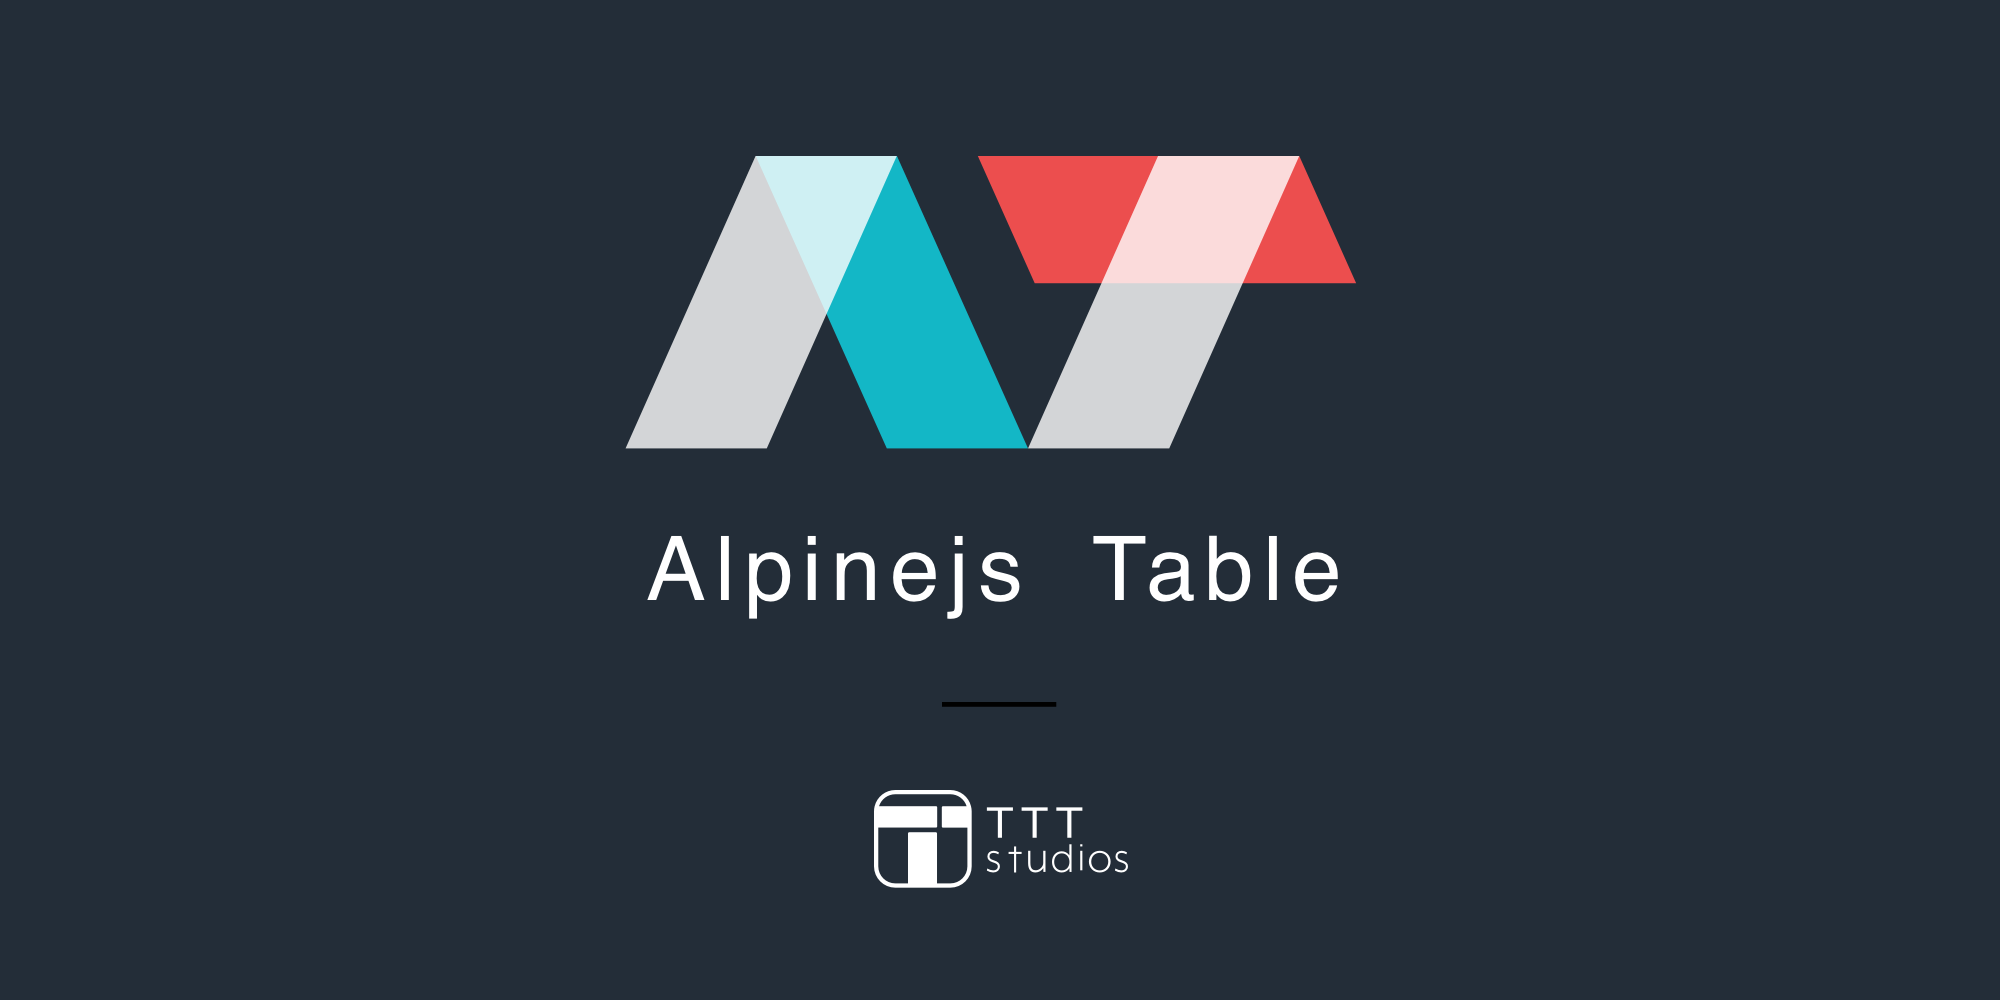 Introducing our new Laravel package: Alpinejs Table